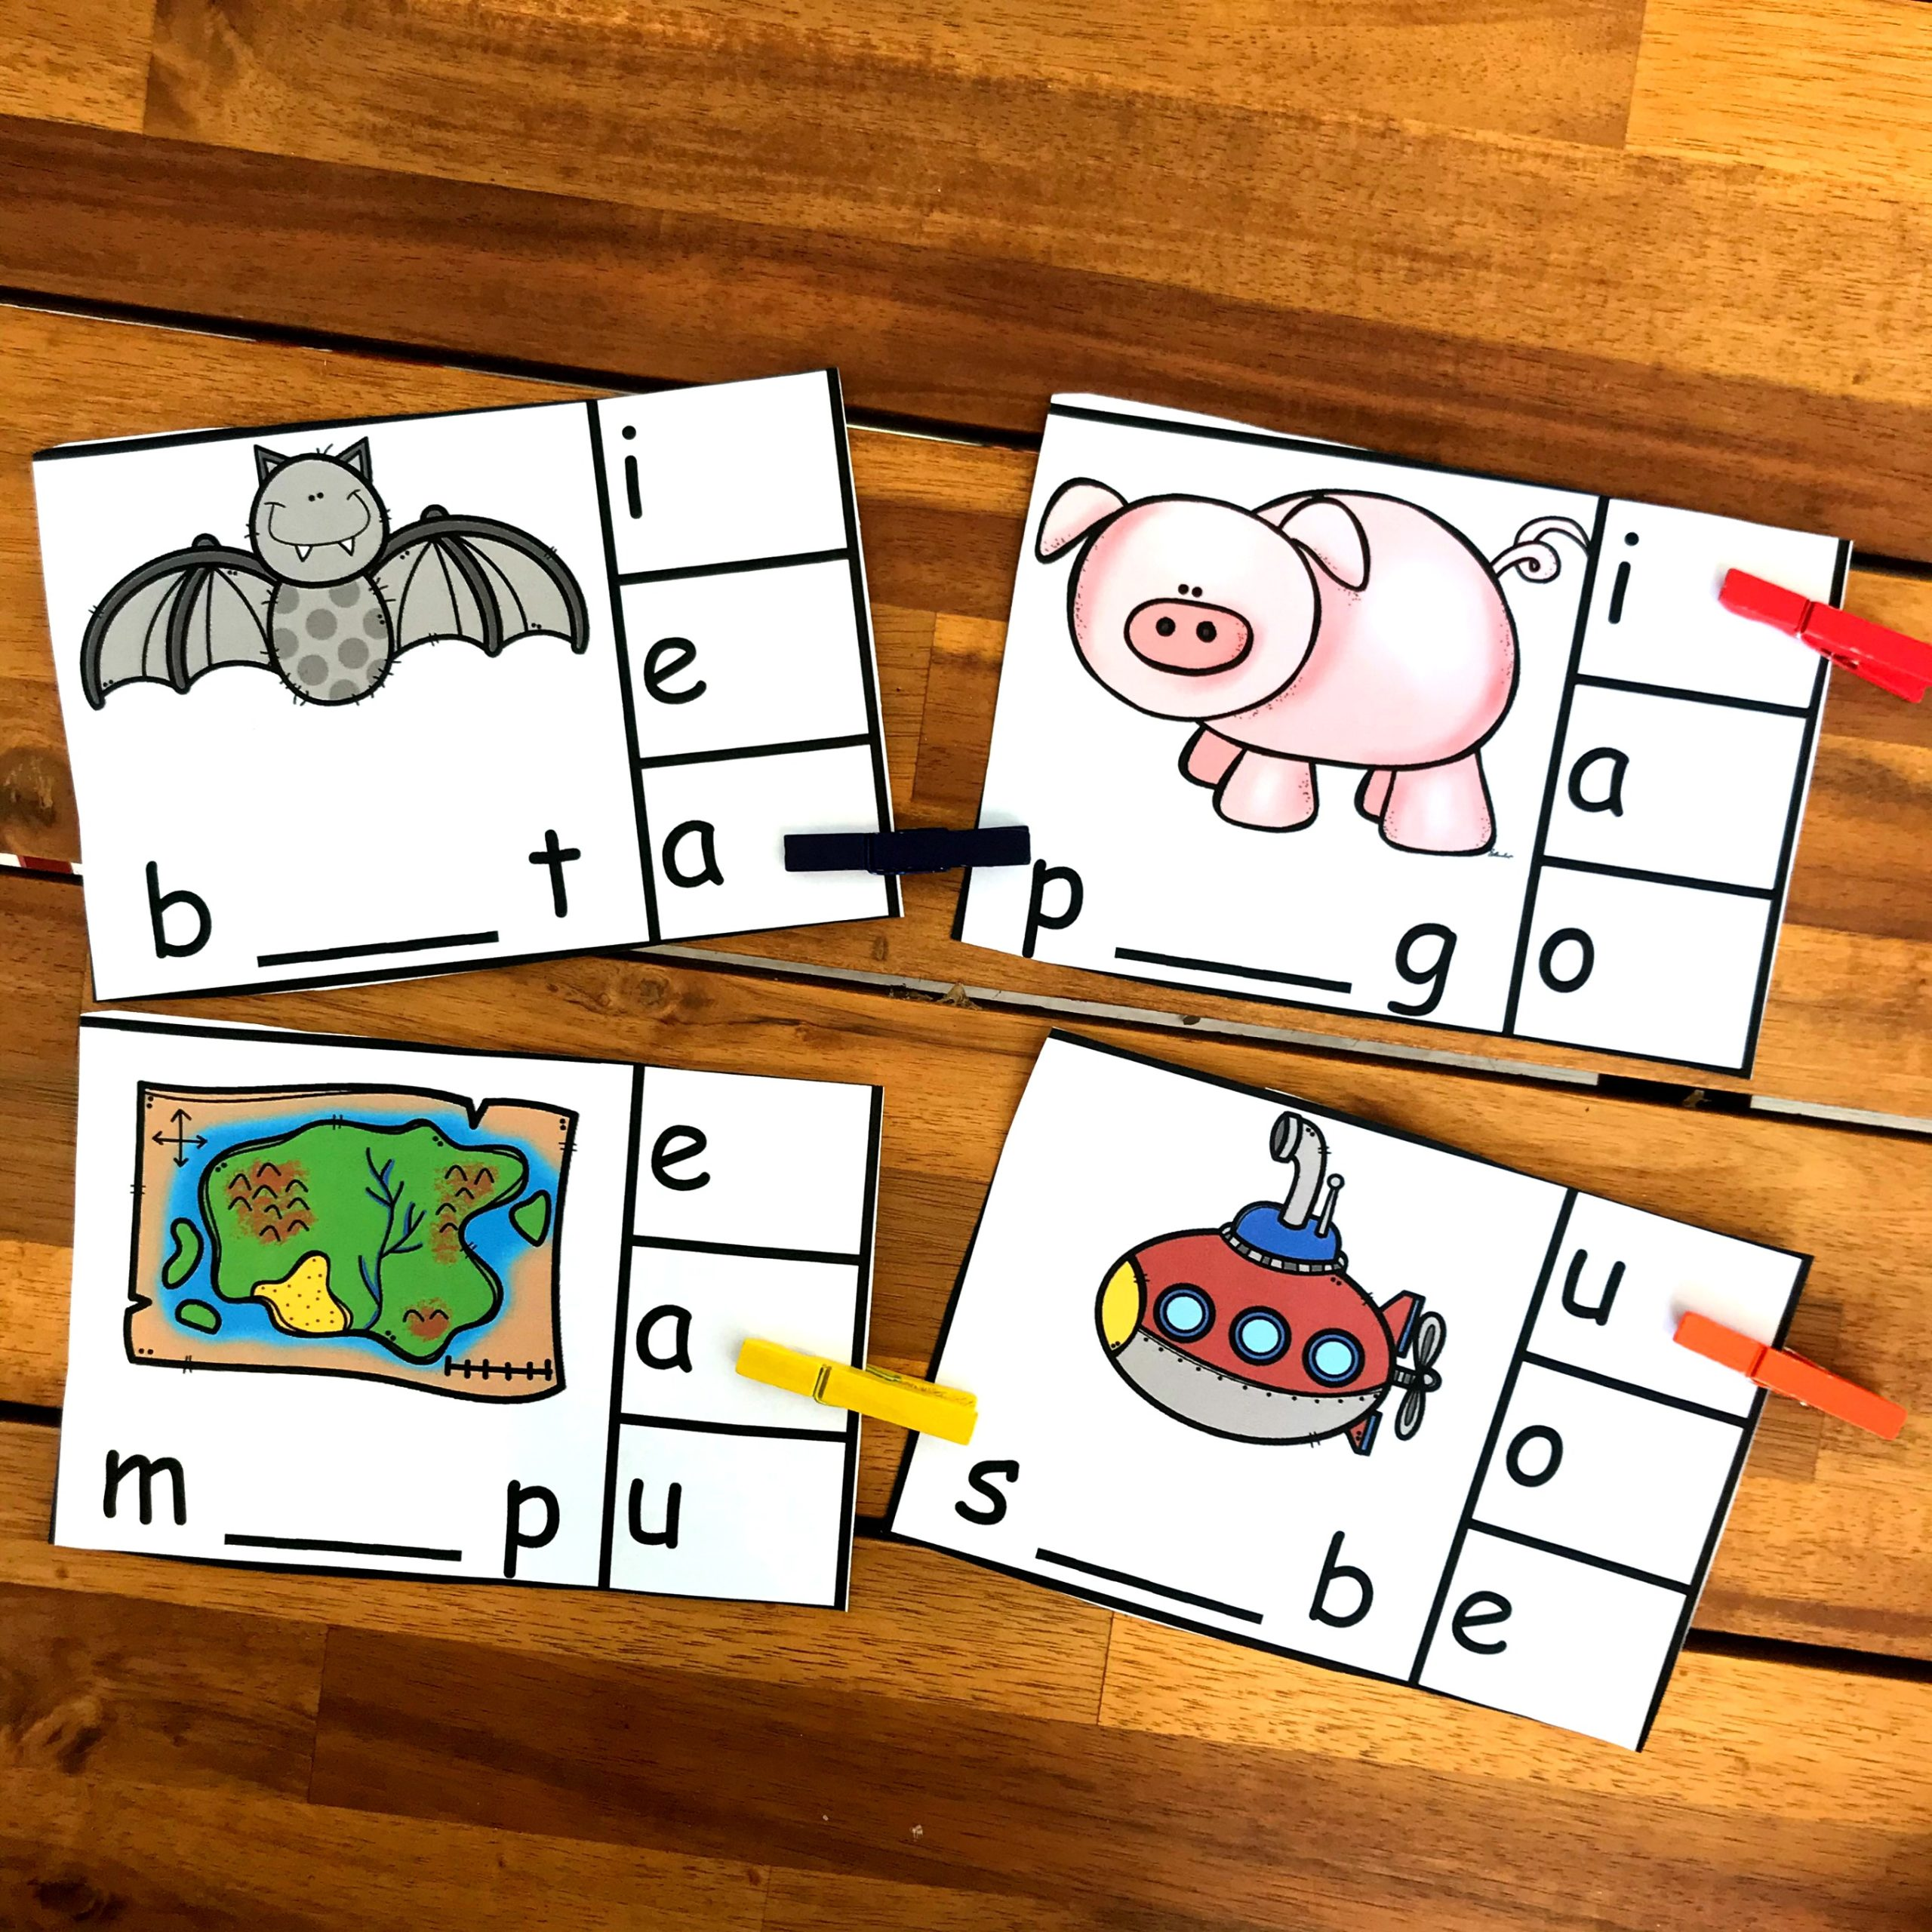 practice vowel sounds with this free printable activity